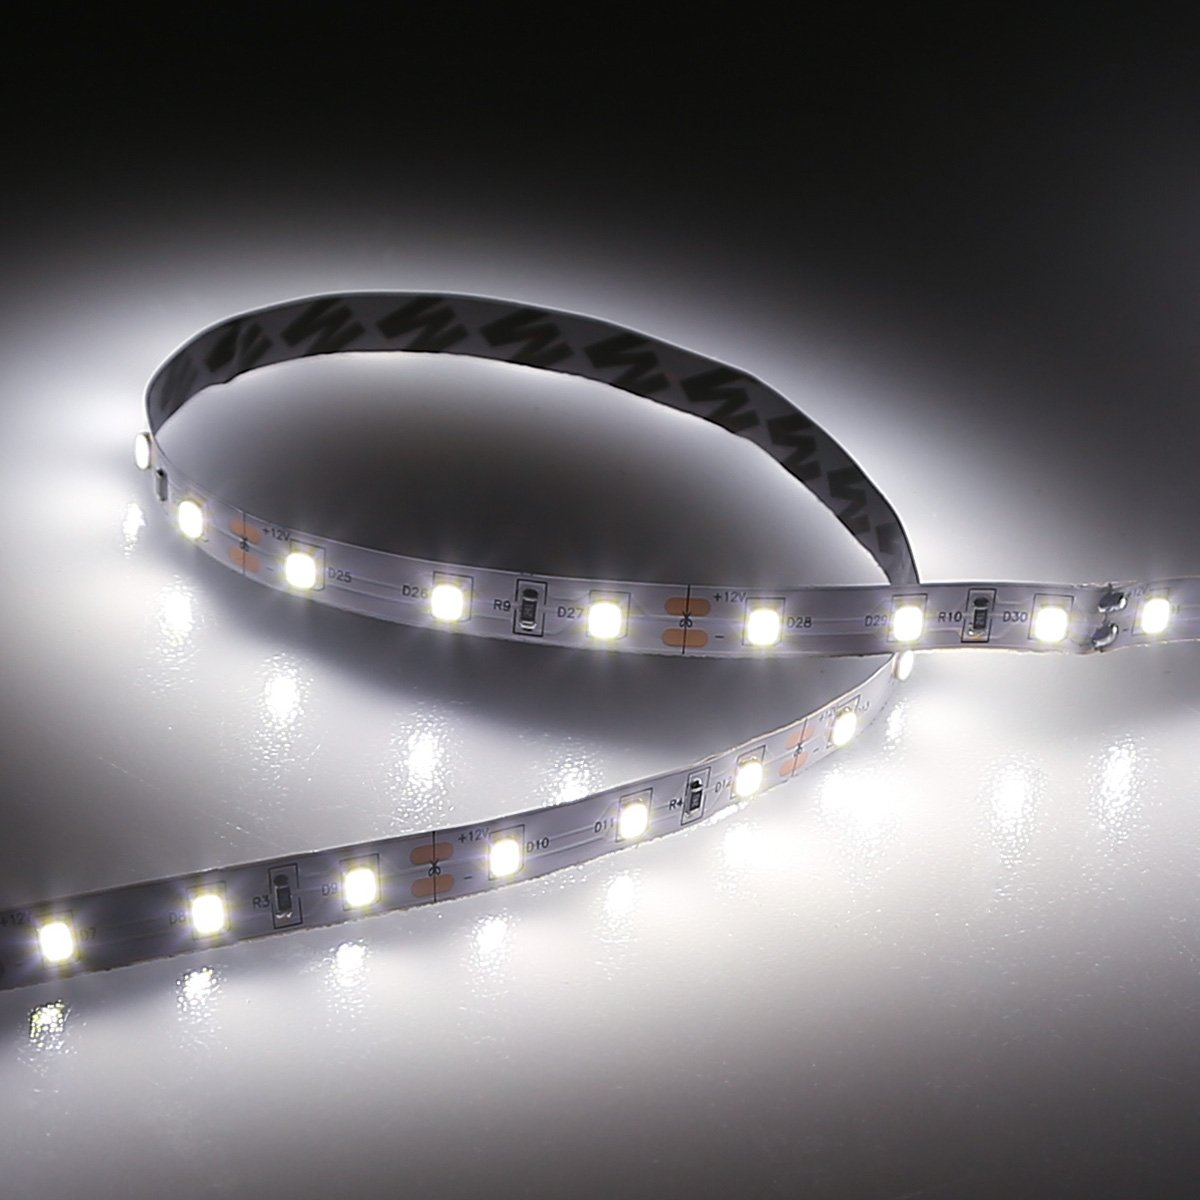 Amazon le 2 pack 164ft flexible led light strip 300 units smd amazon le 2 pack 164ft flexible led light strip 300 units smd 2835 led12v dc 5000k daylight white non waterproof led tape led ribbon mozeypictures Choice Image